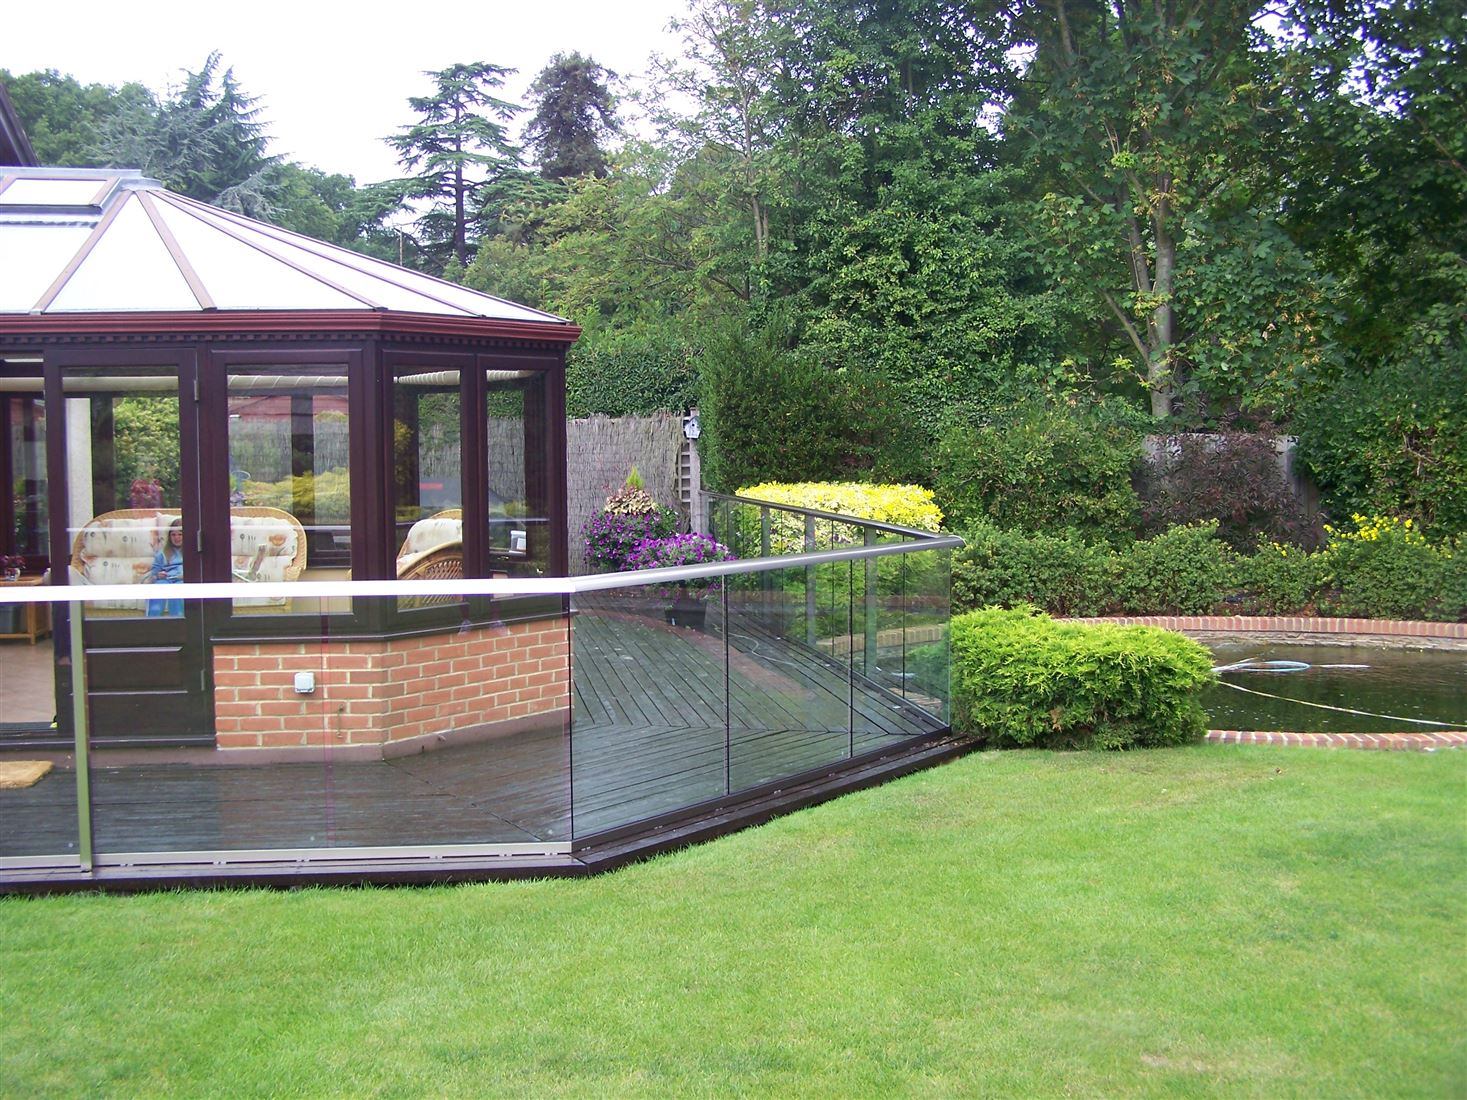 Aerofoil Glass Balustrade overlooking the well manicured garden with a pond